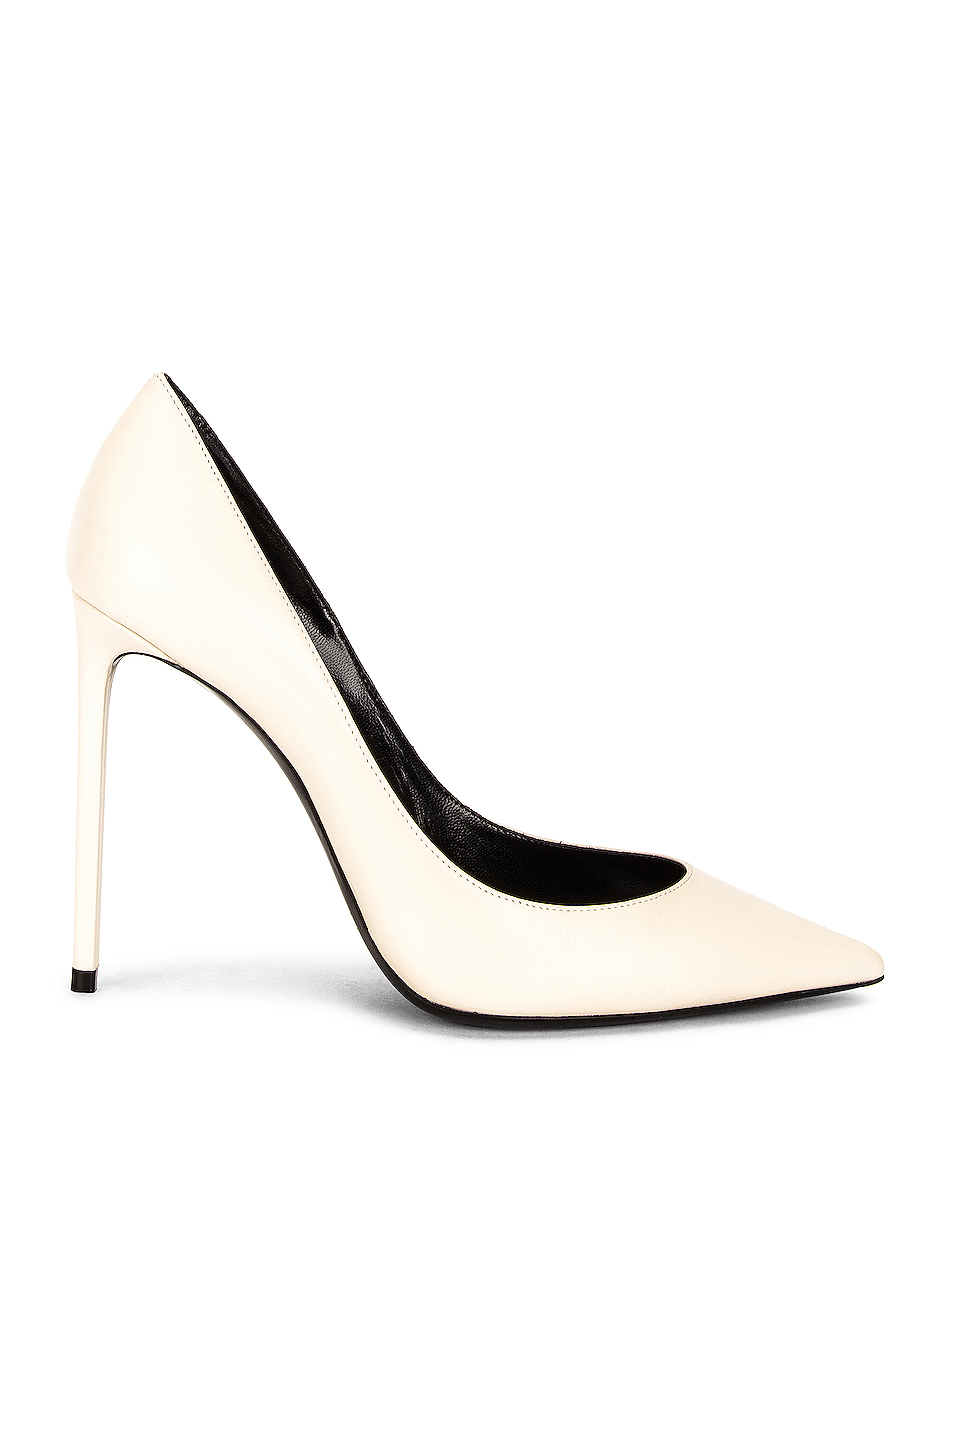 Zoe Pumps by SAINT LAURENT, available on fwrd.com for $645 Hailey Baldwin Shoes Exact Product